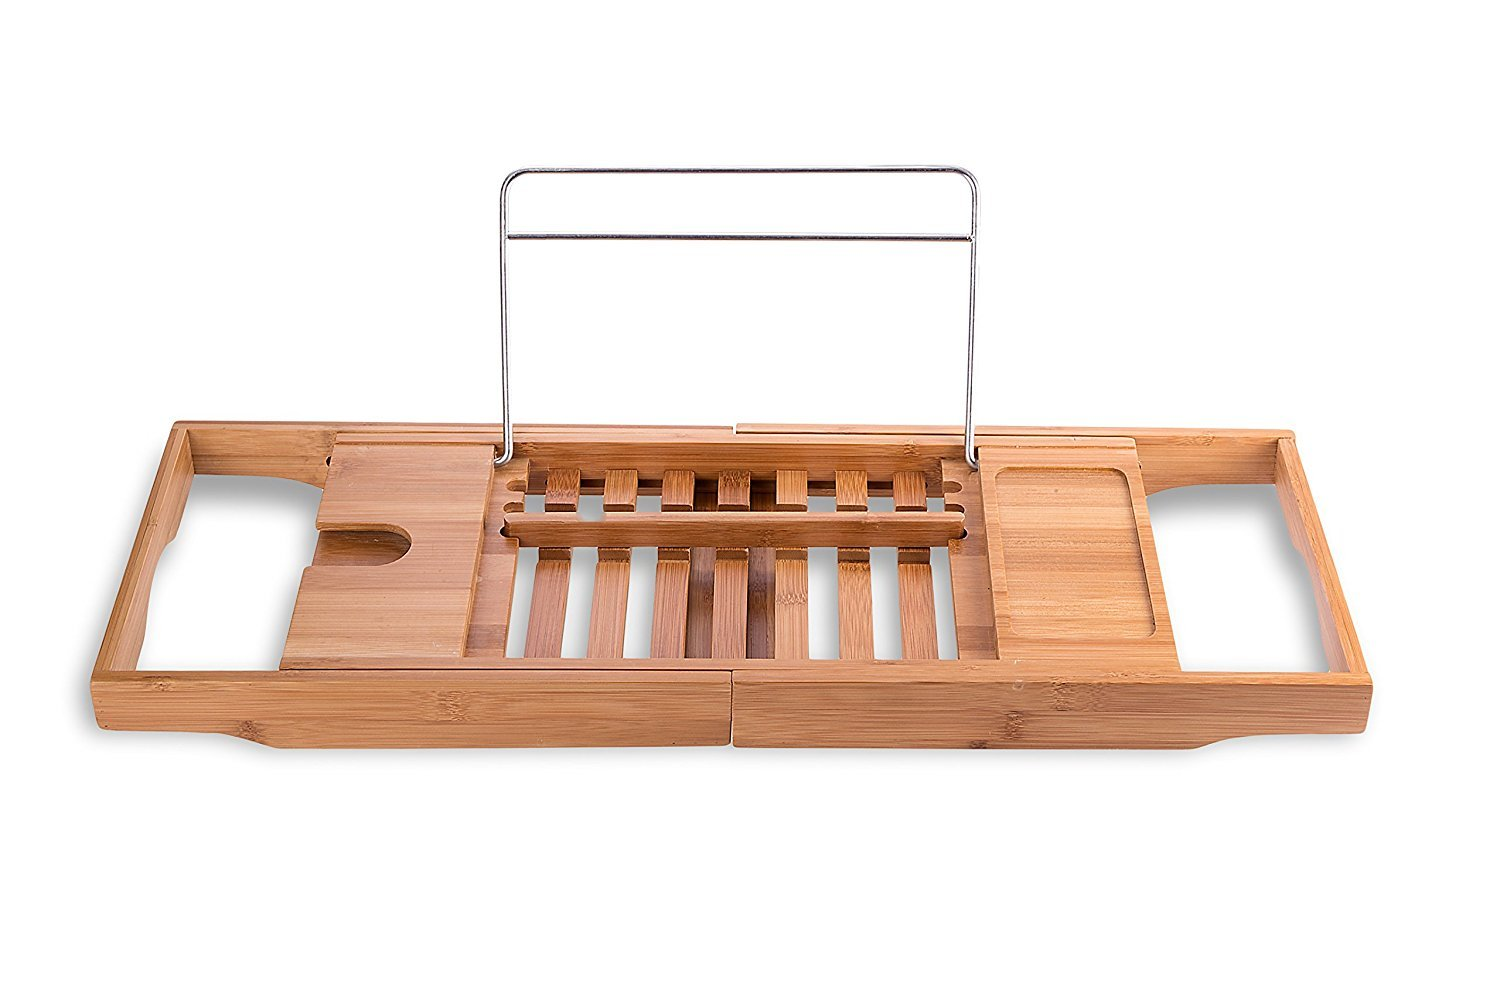 Luxury Bamboo Bathtub Tray / Shelf / Caddy with Extending Arms | Longer Lasting Durable Finish with Reinforced Frame | Spa / Bath Organizer, Book and Drink Holder